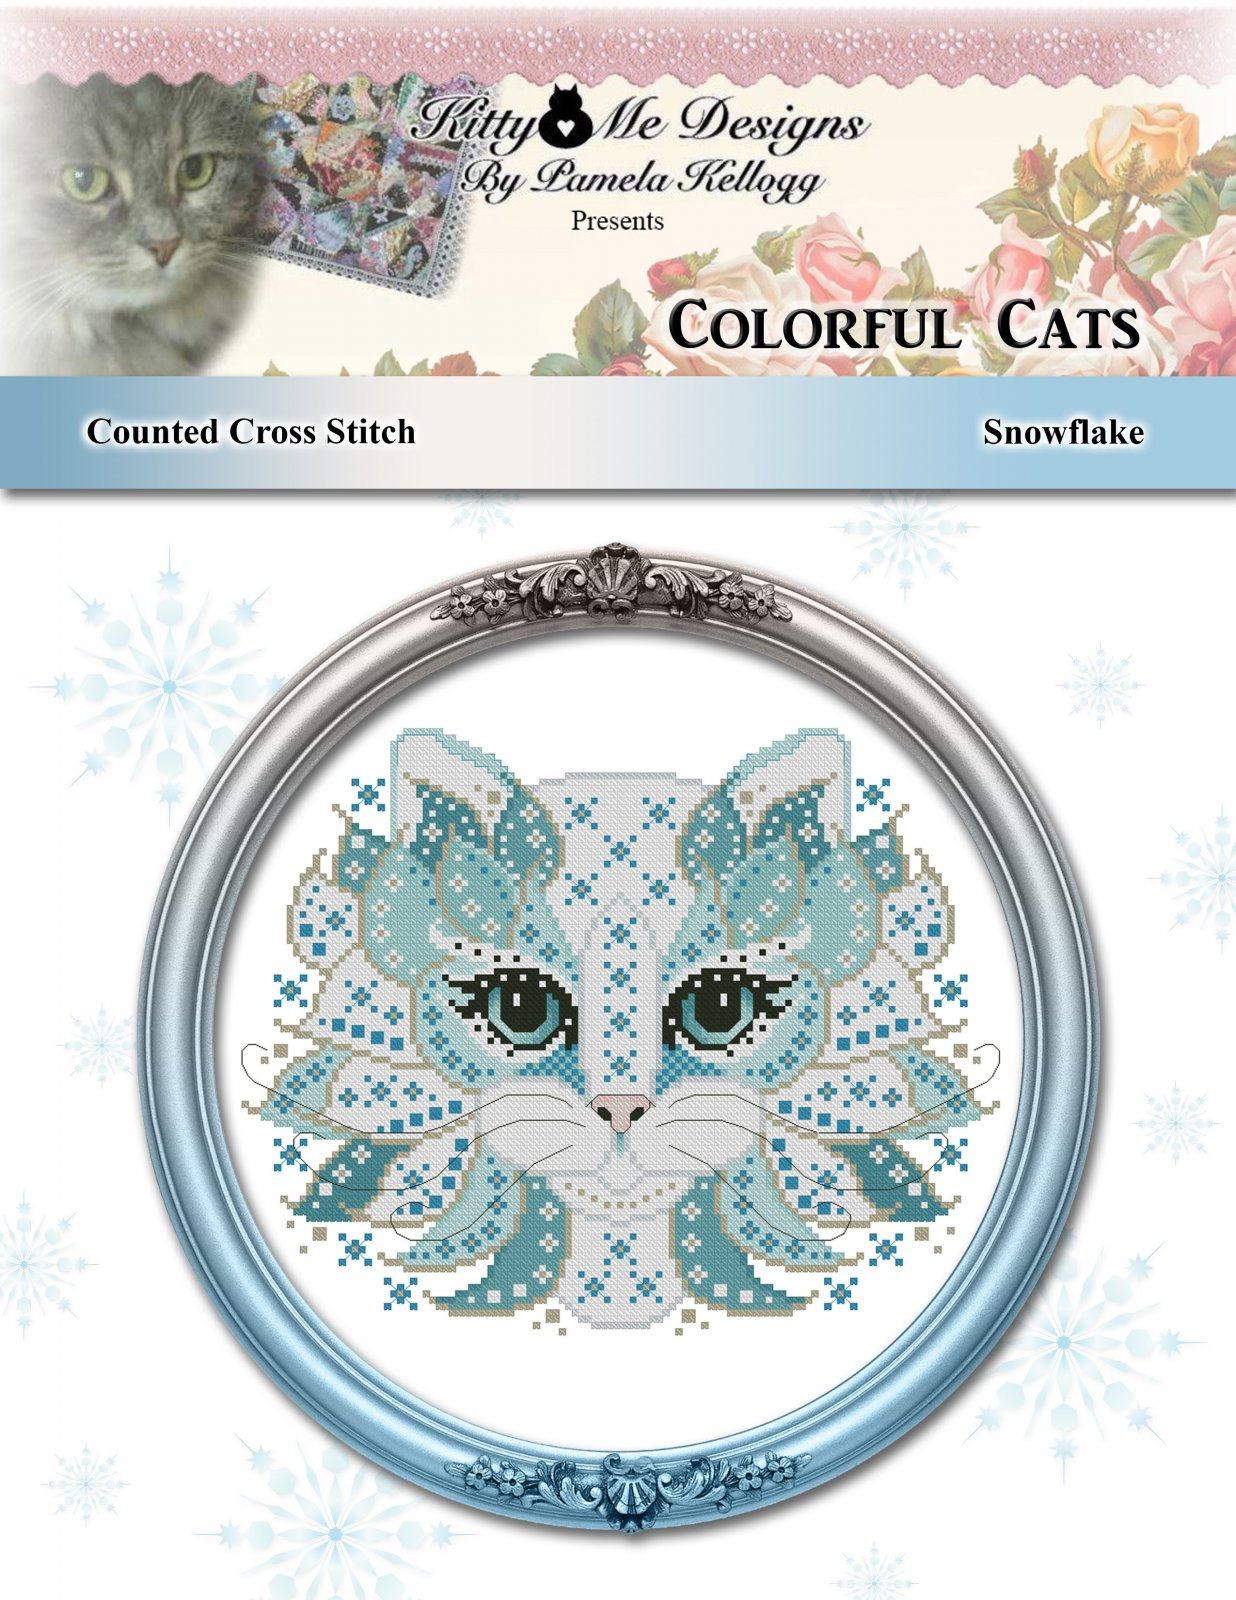 Kitty and Me Colorful Cats Snowflake